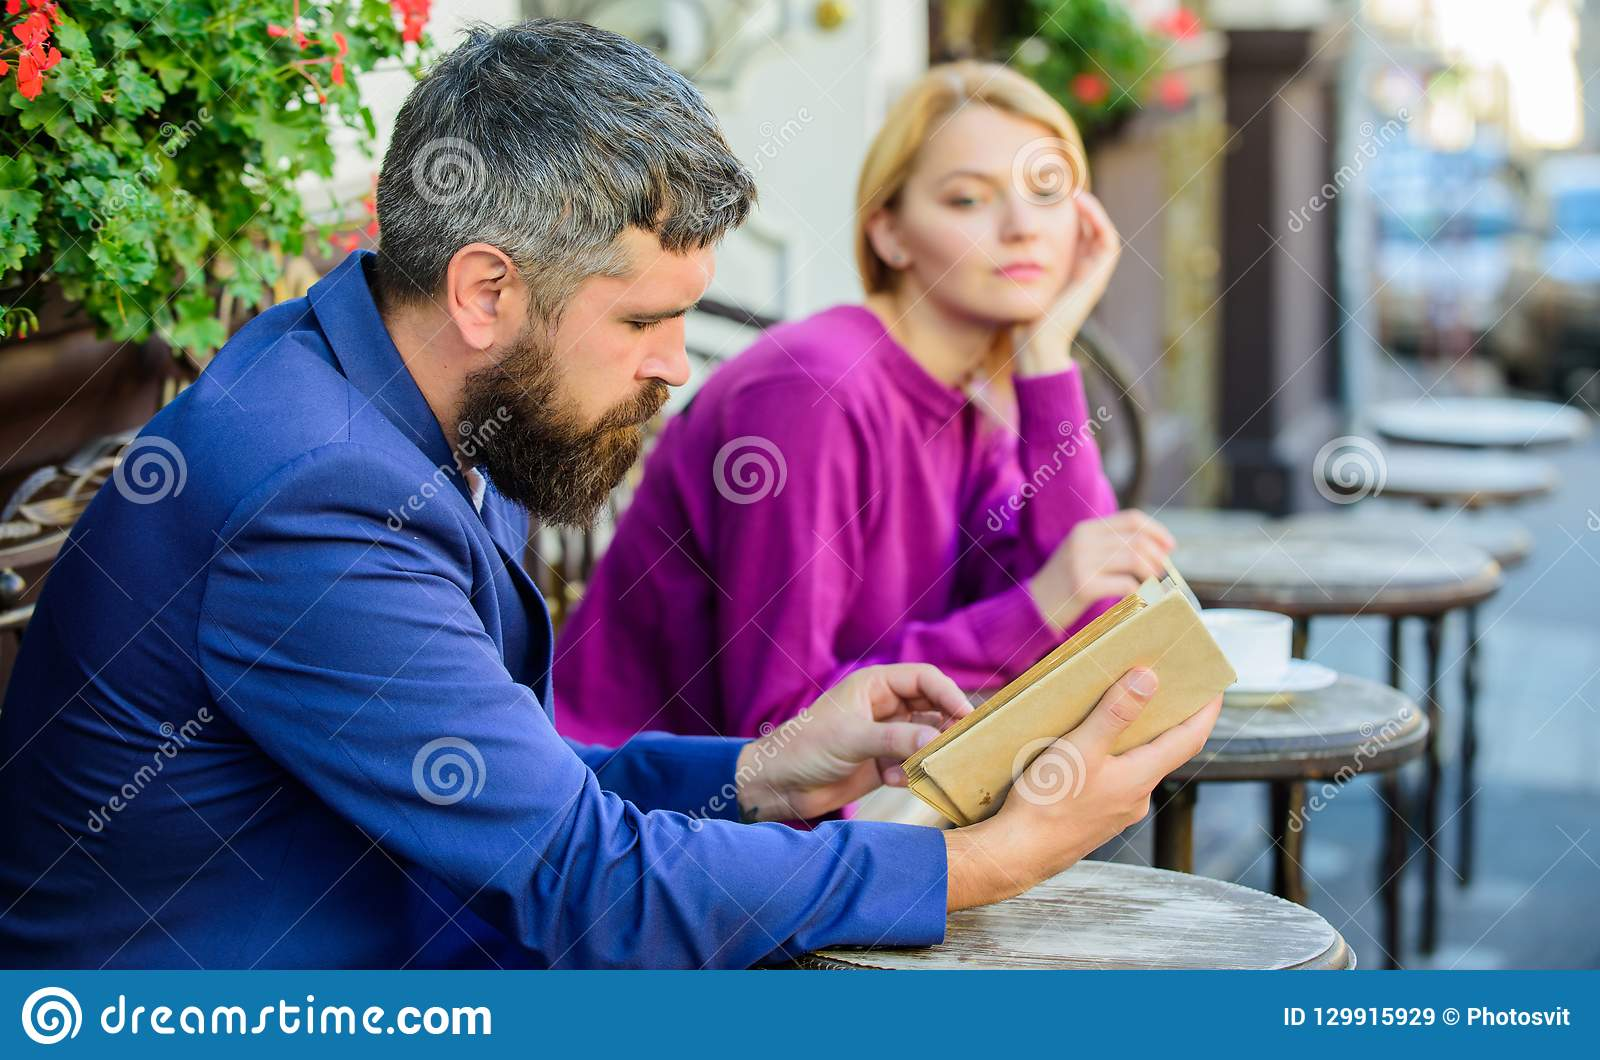 Meeting people with similar interests. Man and woman sit cafe terrace. Girl interested what he reading. Literature